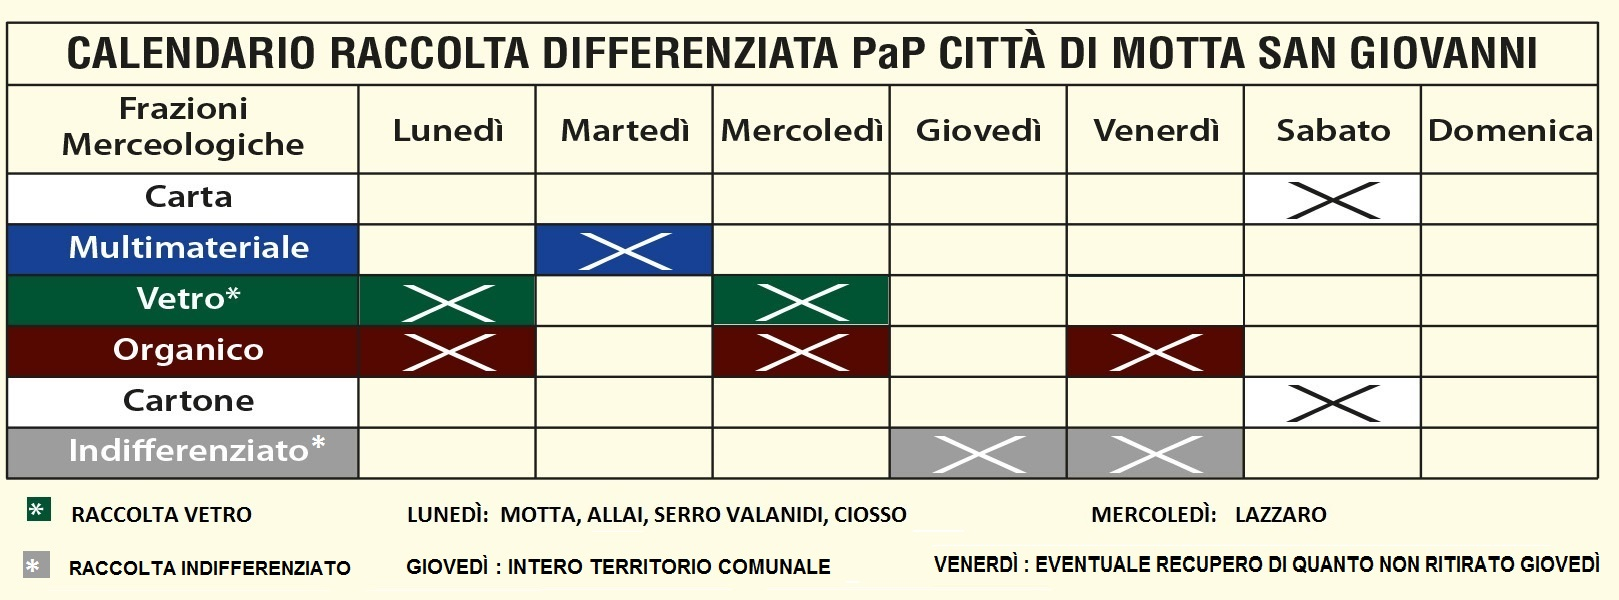 Nuovo Calendario.Nuovo Calendario Raccolta Differenziata